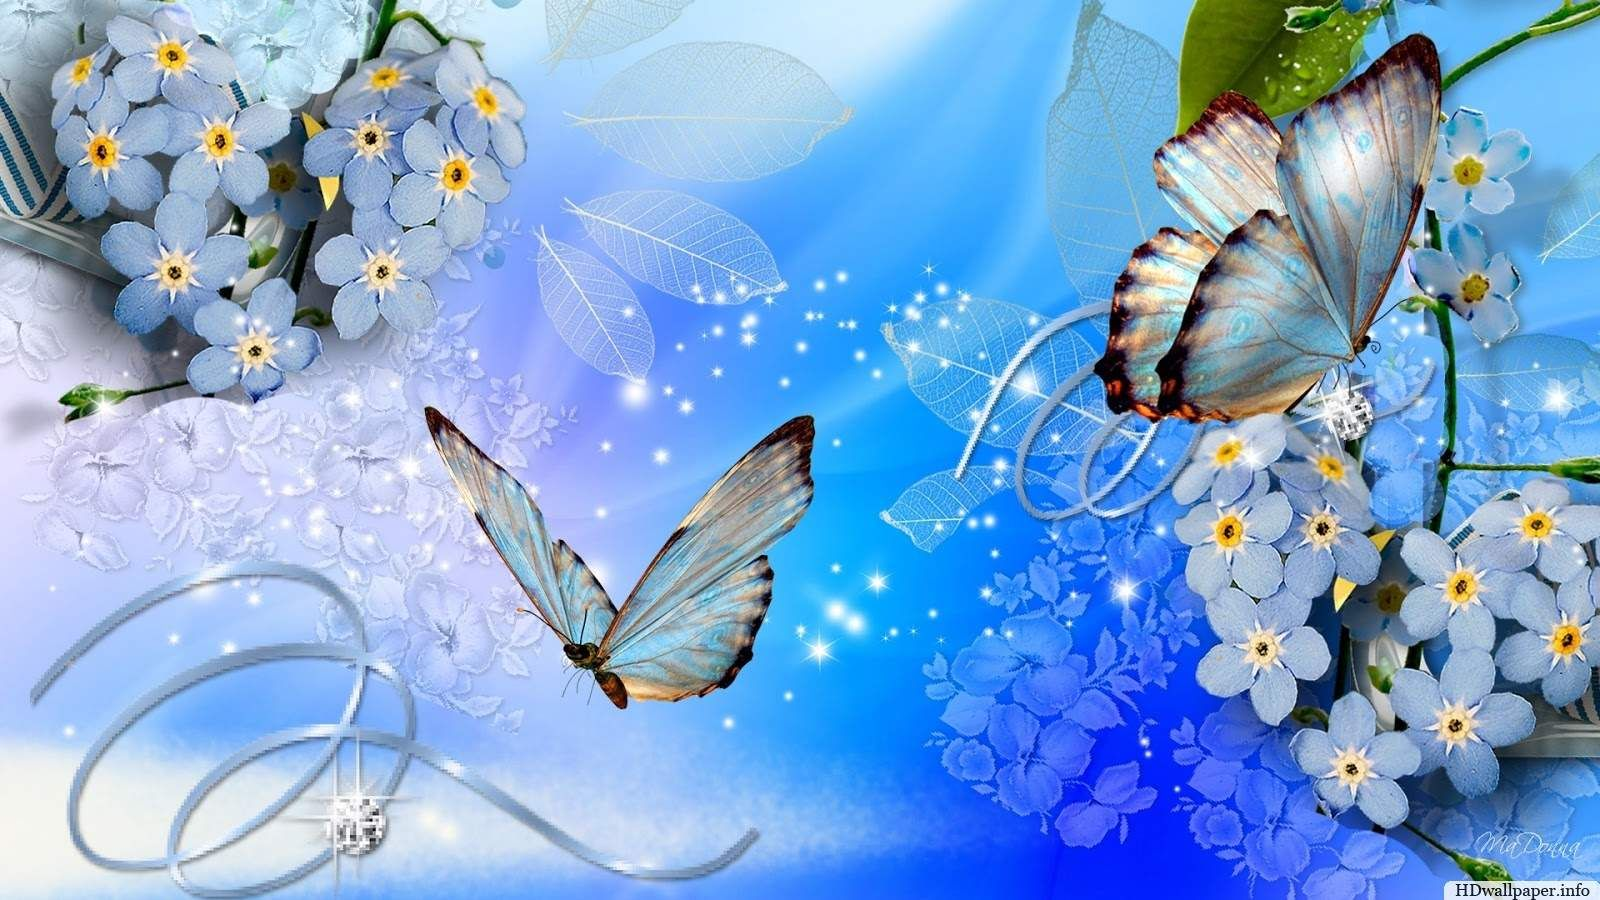 Free Download Hd Wallpapers For Mobile Pc Nature Desktop Love Blue Flower Wallpaper Blue Butterfly Wallpaper Butterfly Wallpaper